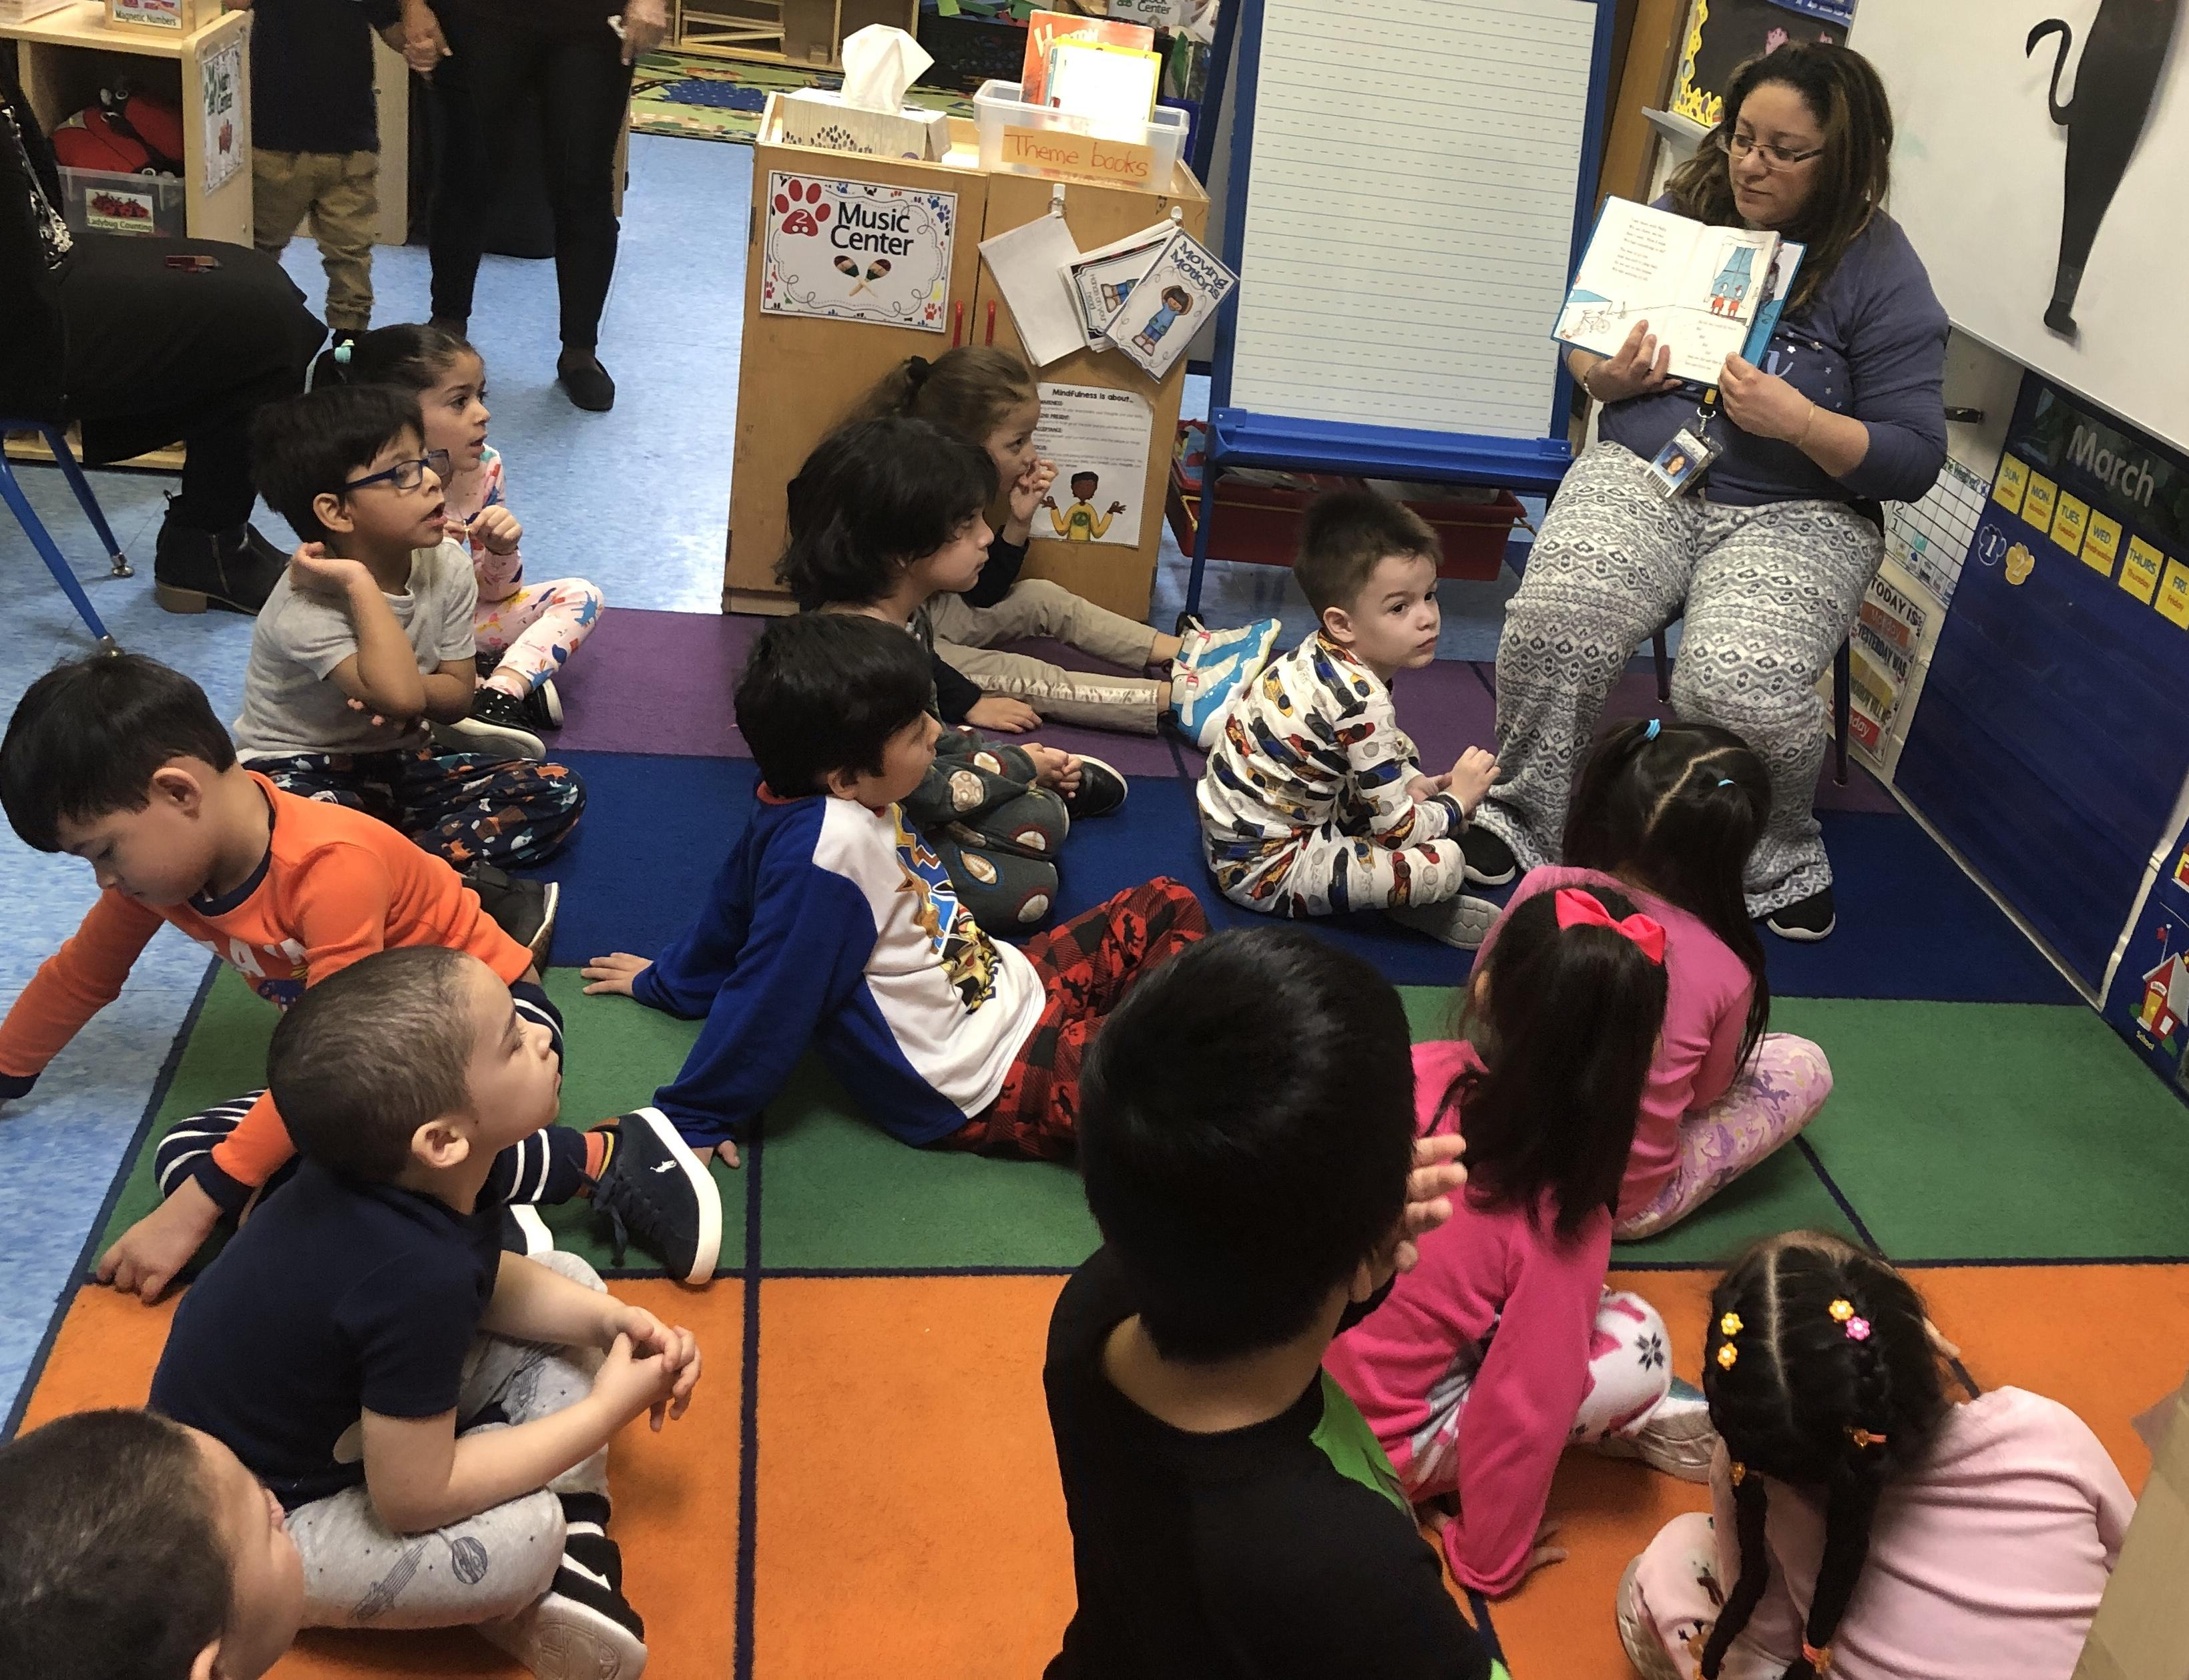 Mrs. Ortiz reading to her students wearing pjs